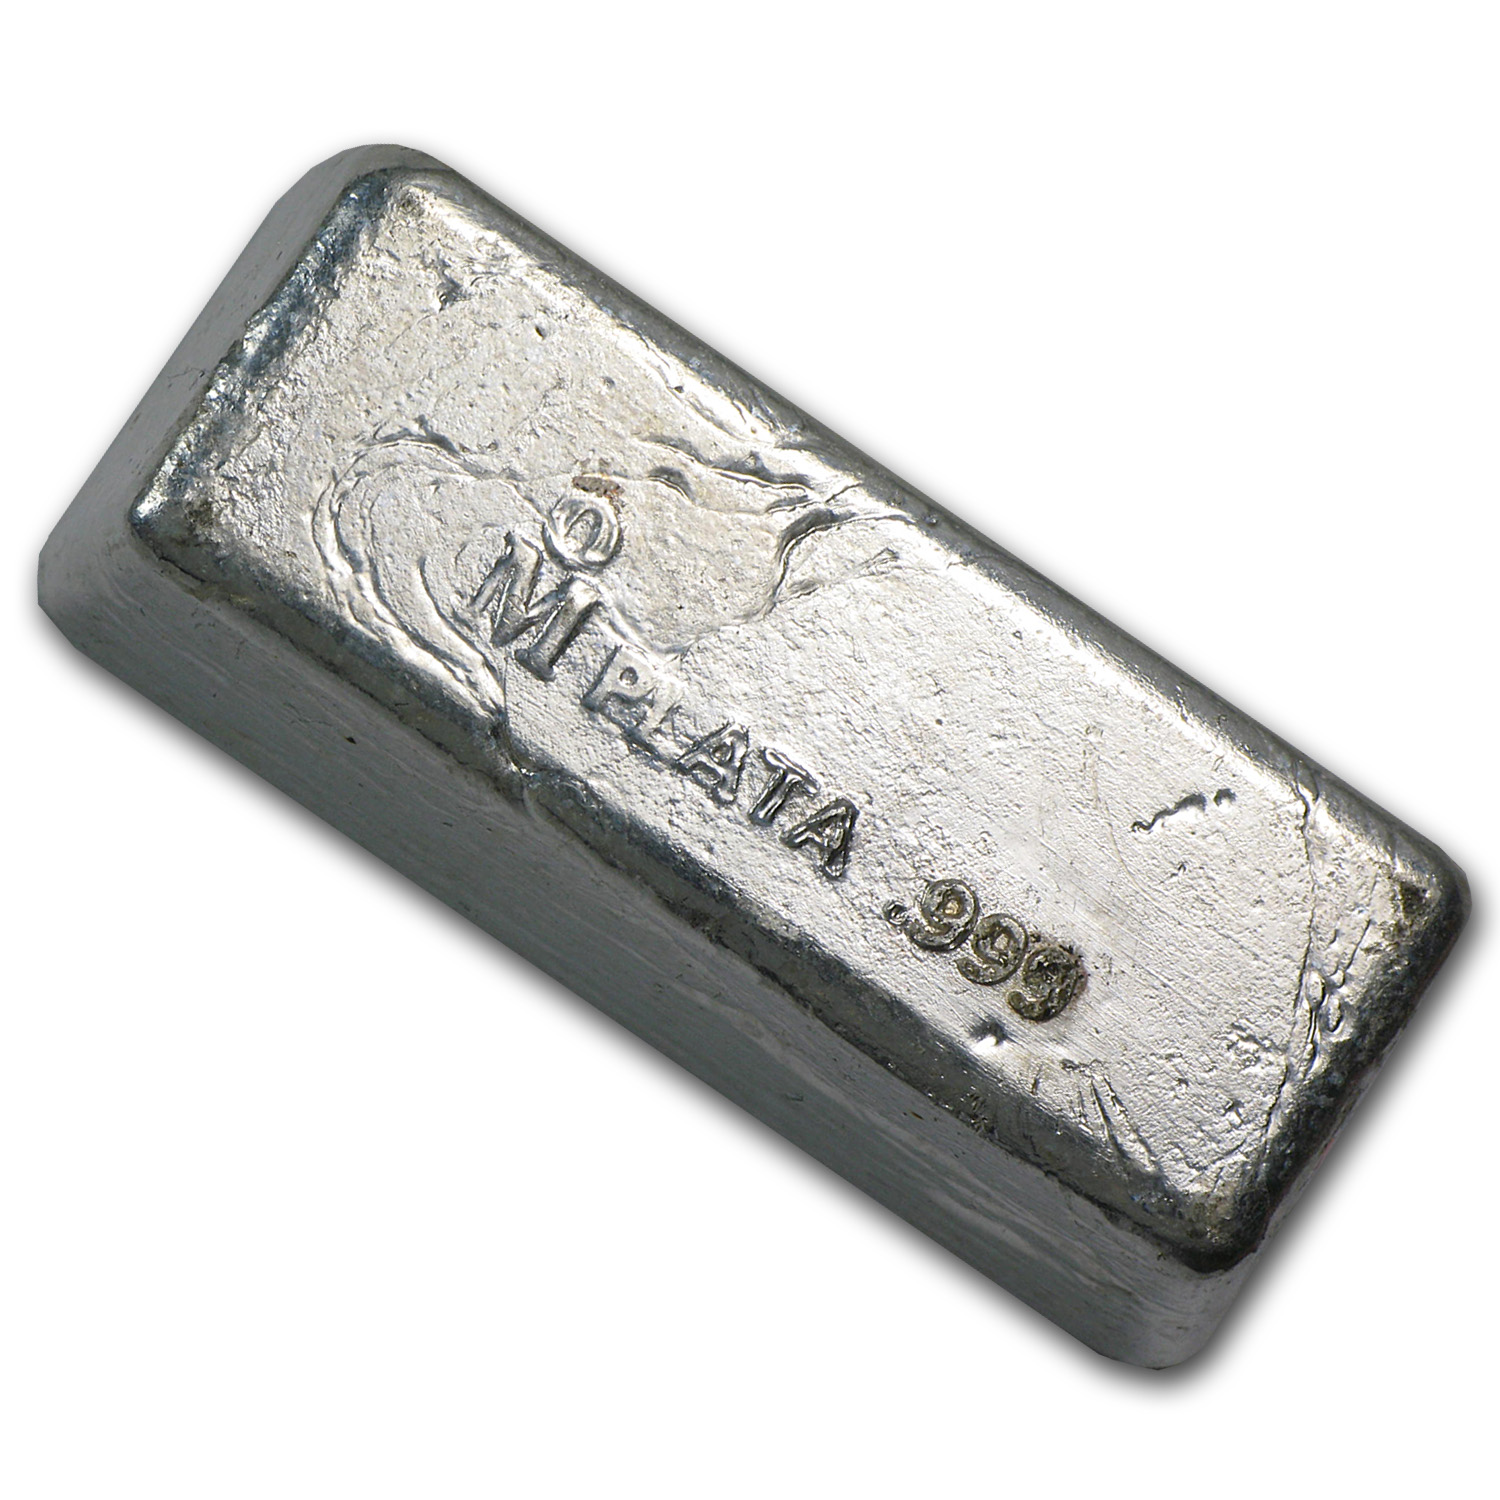 3 92 Oz Silver Bar La Casa De Moneda De M 233 Xico All